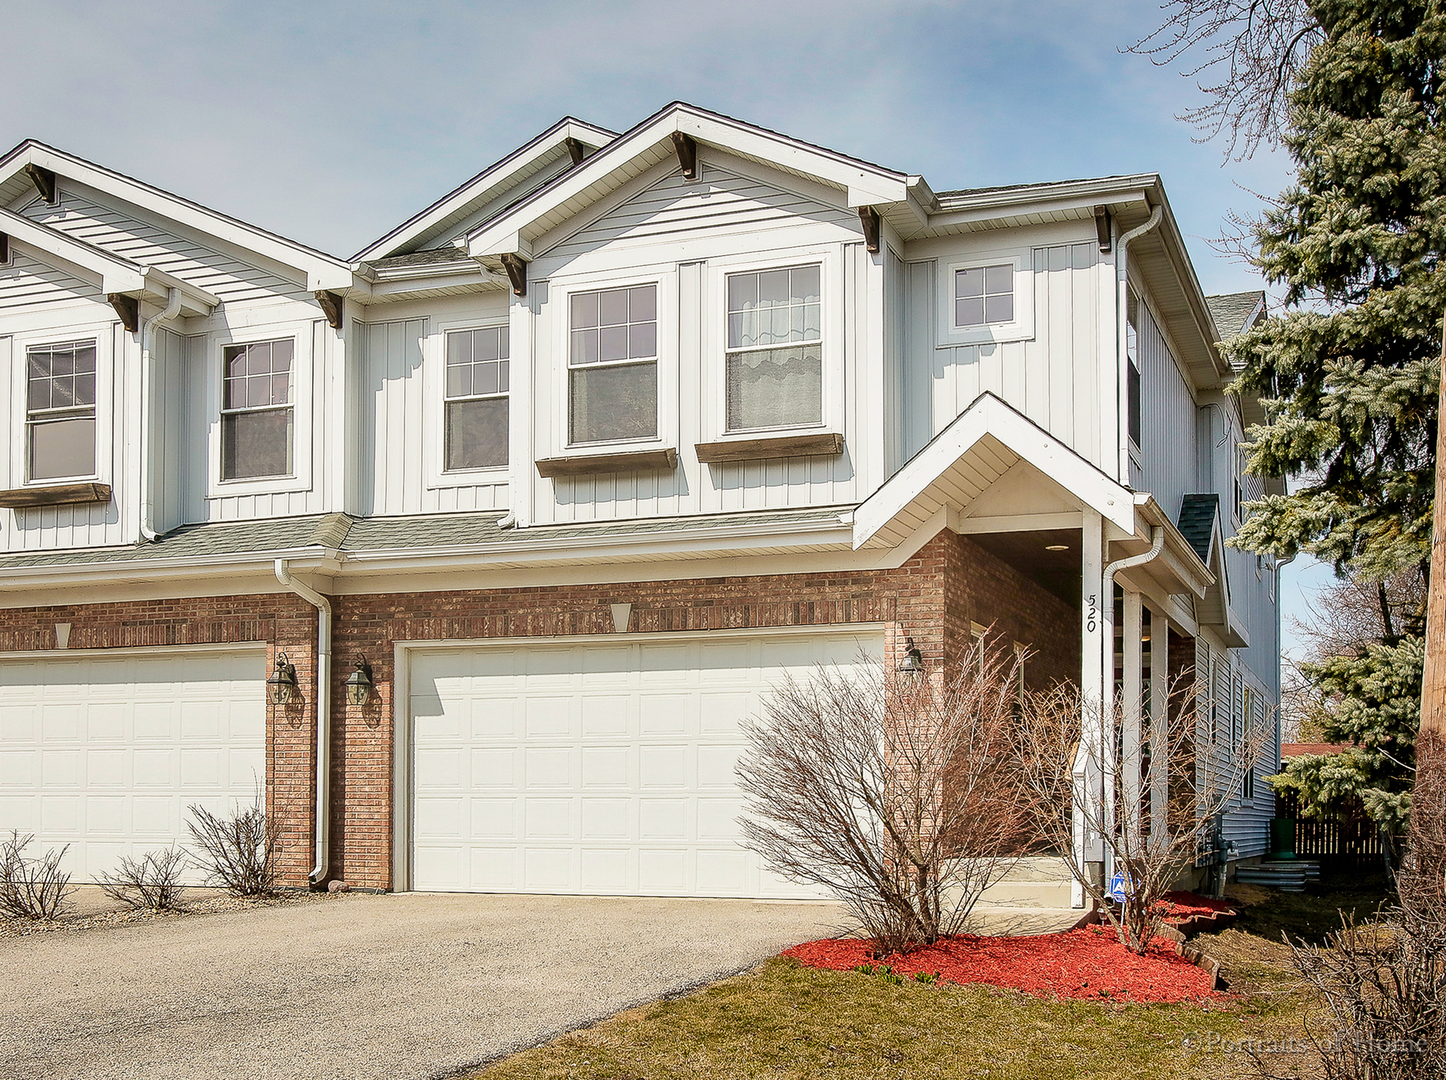 520 Meadow ,Lombard, Illinois 60148